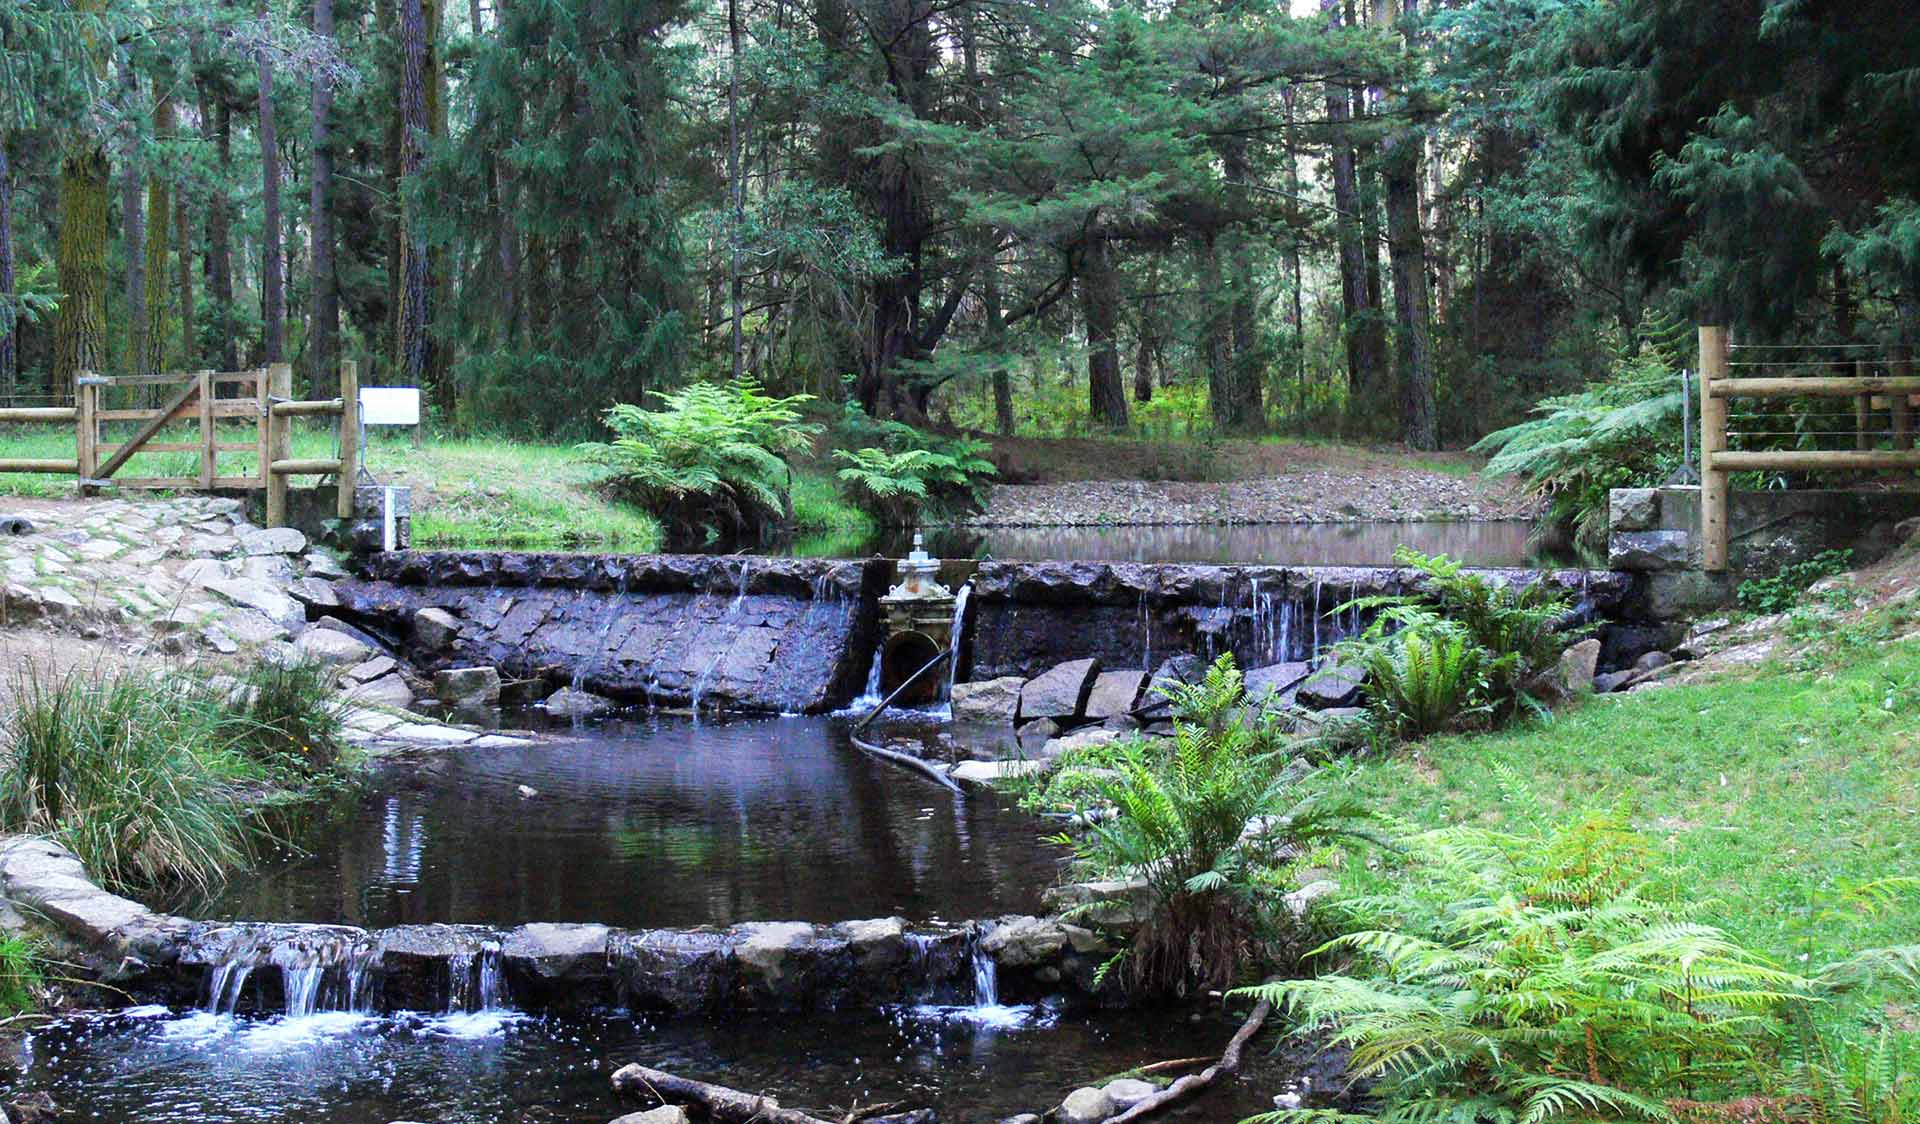 Donellys Weir in the Yarra Ranges National Park.